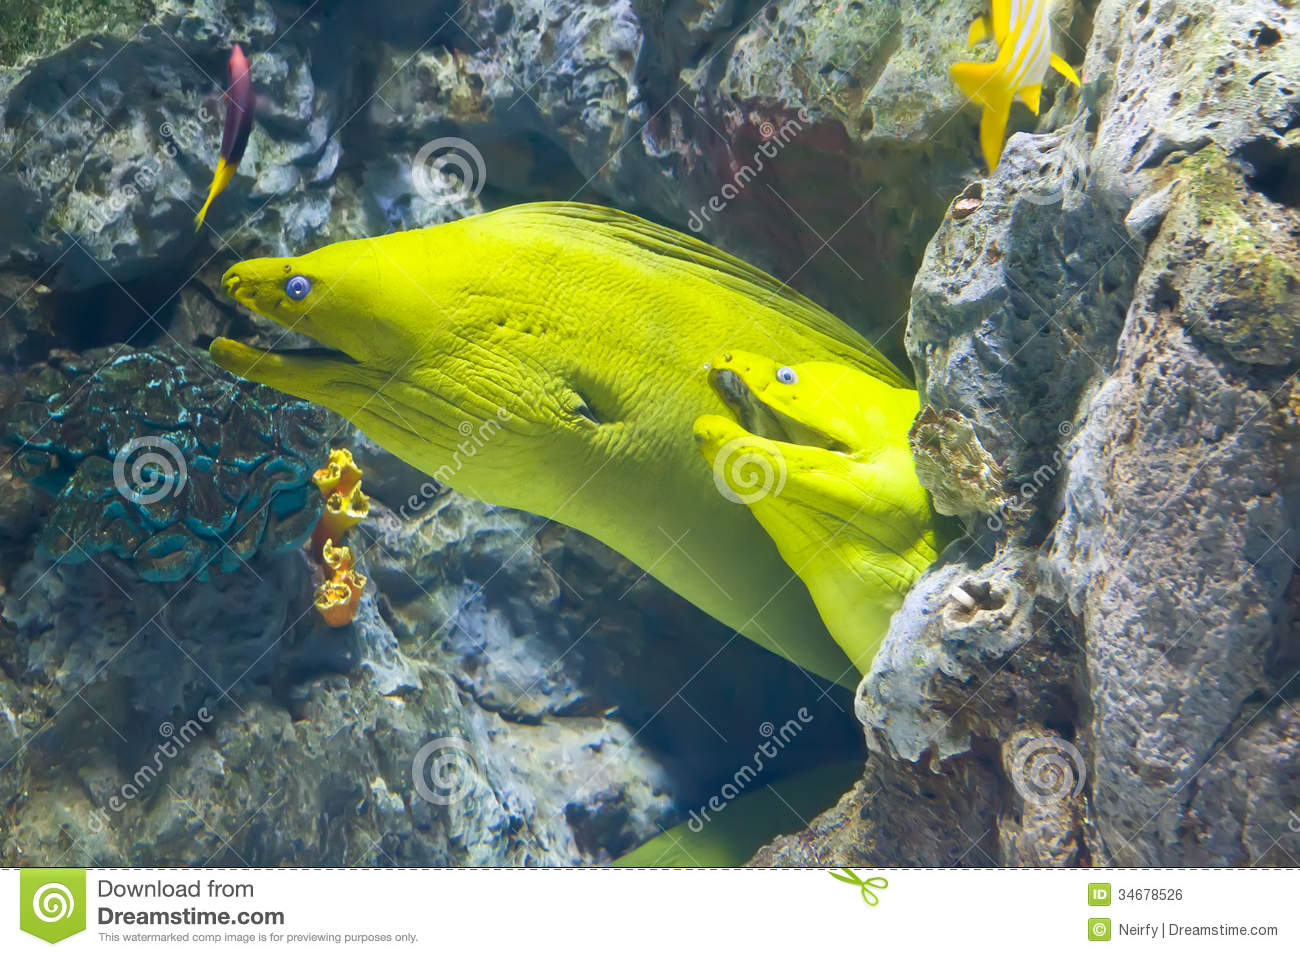 Yellow Moray Fish In Coral Reef Royalty Free Stock Image - Image: 34678526